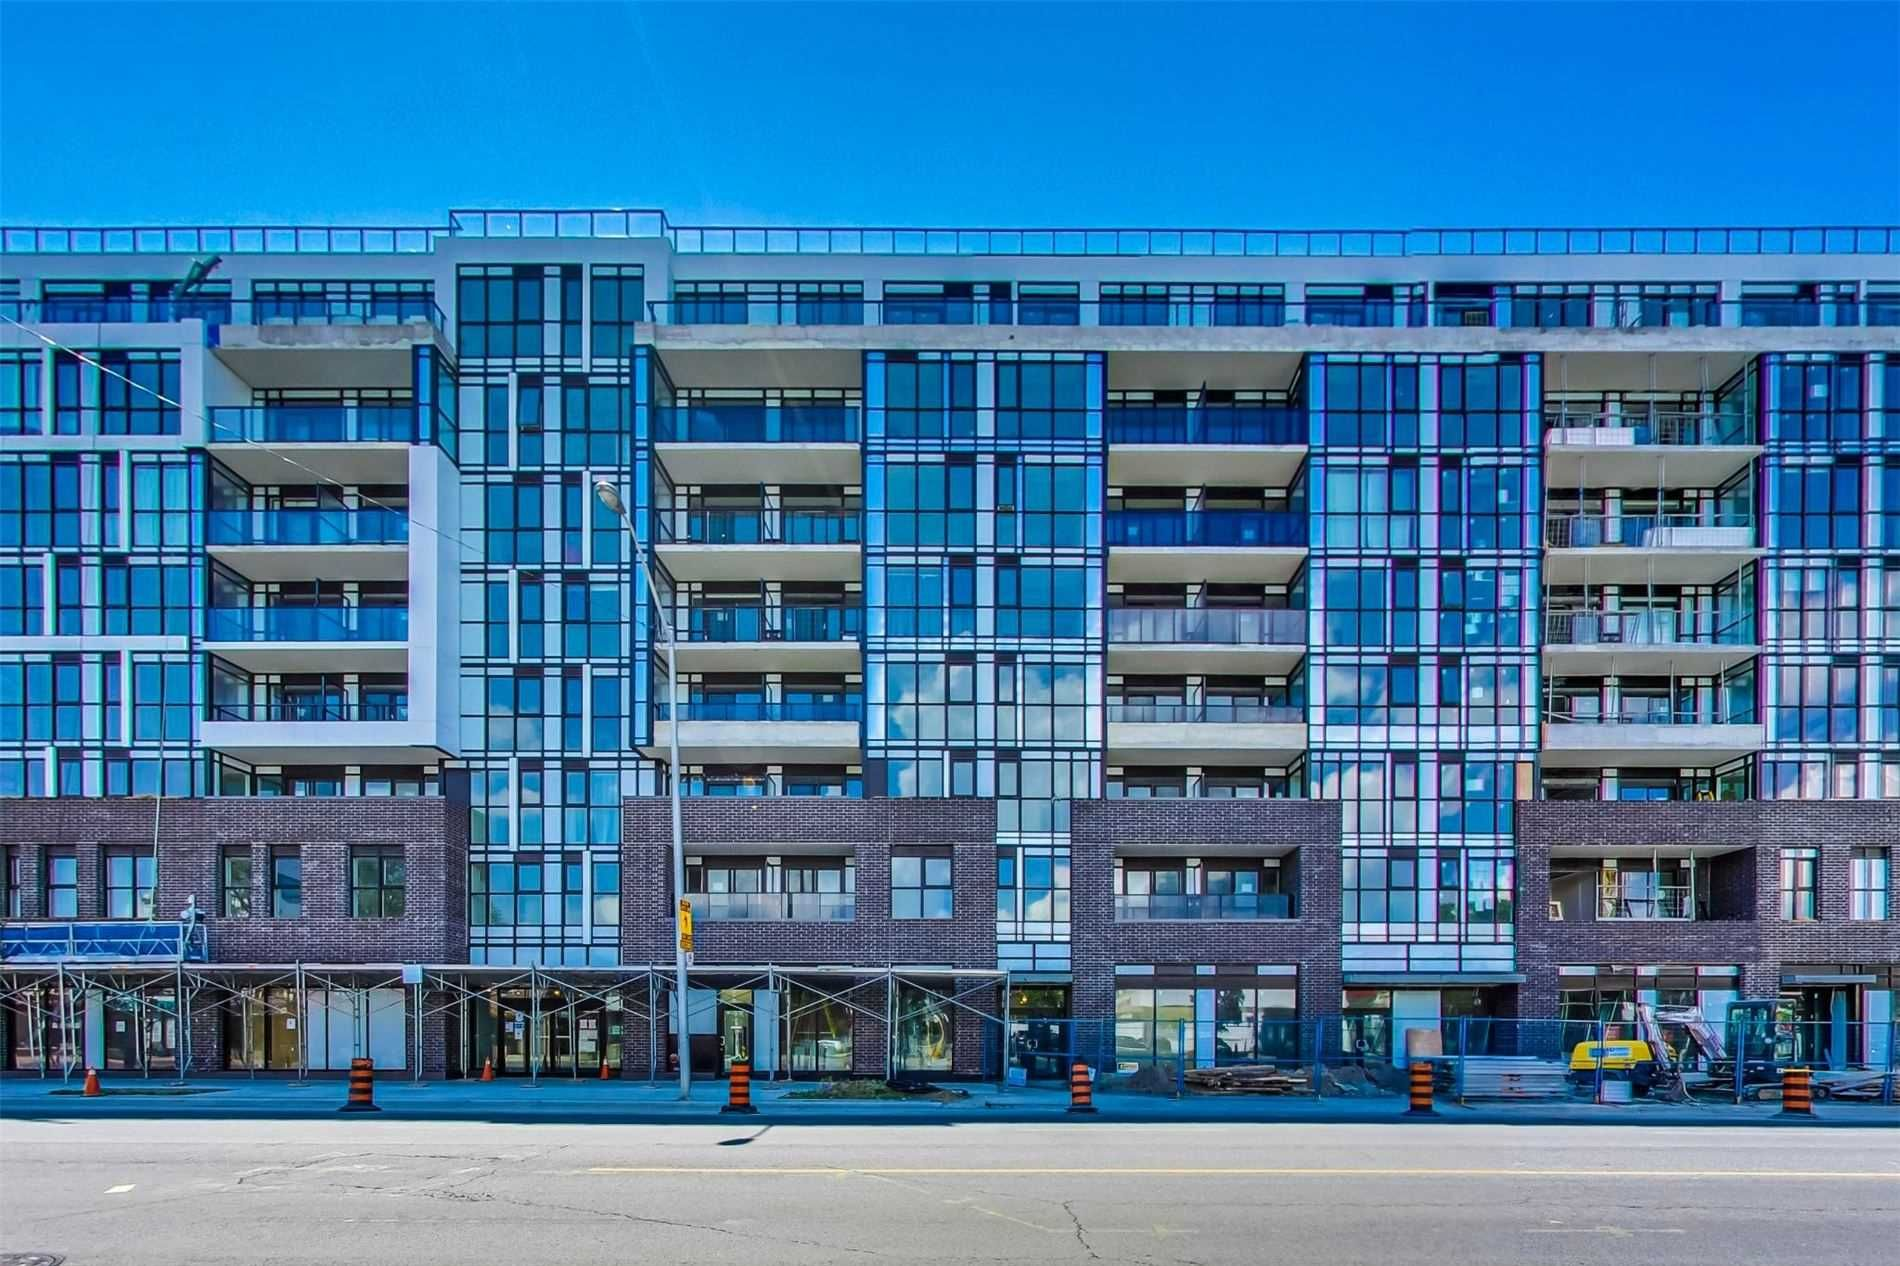 Main Photo: 711 2301 Danforth Avenue in Toronto: East End-Danforth Condo for lease (Toronto E02)  : MLS®# E4816624